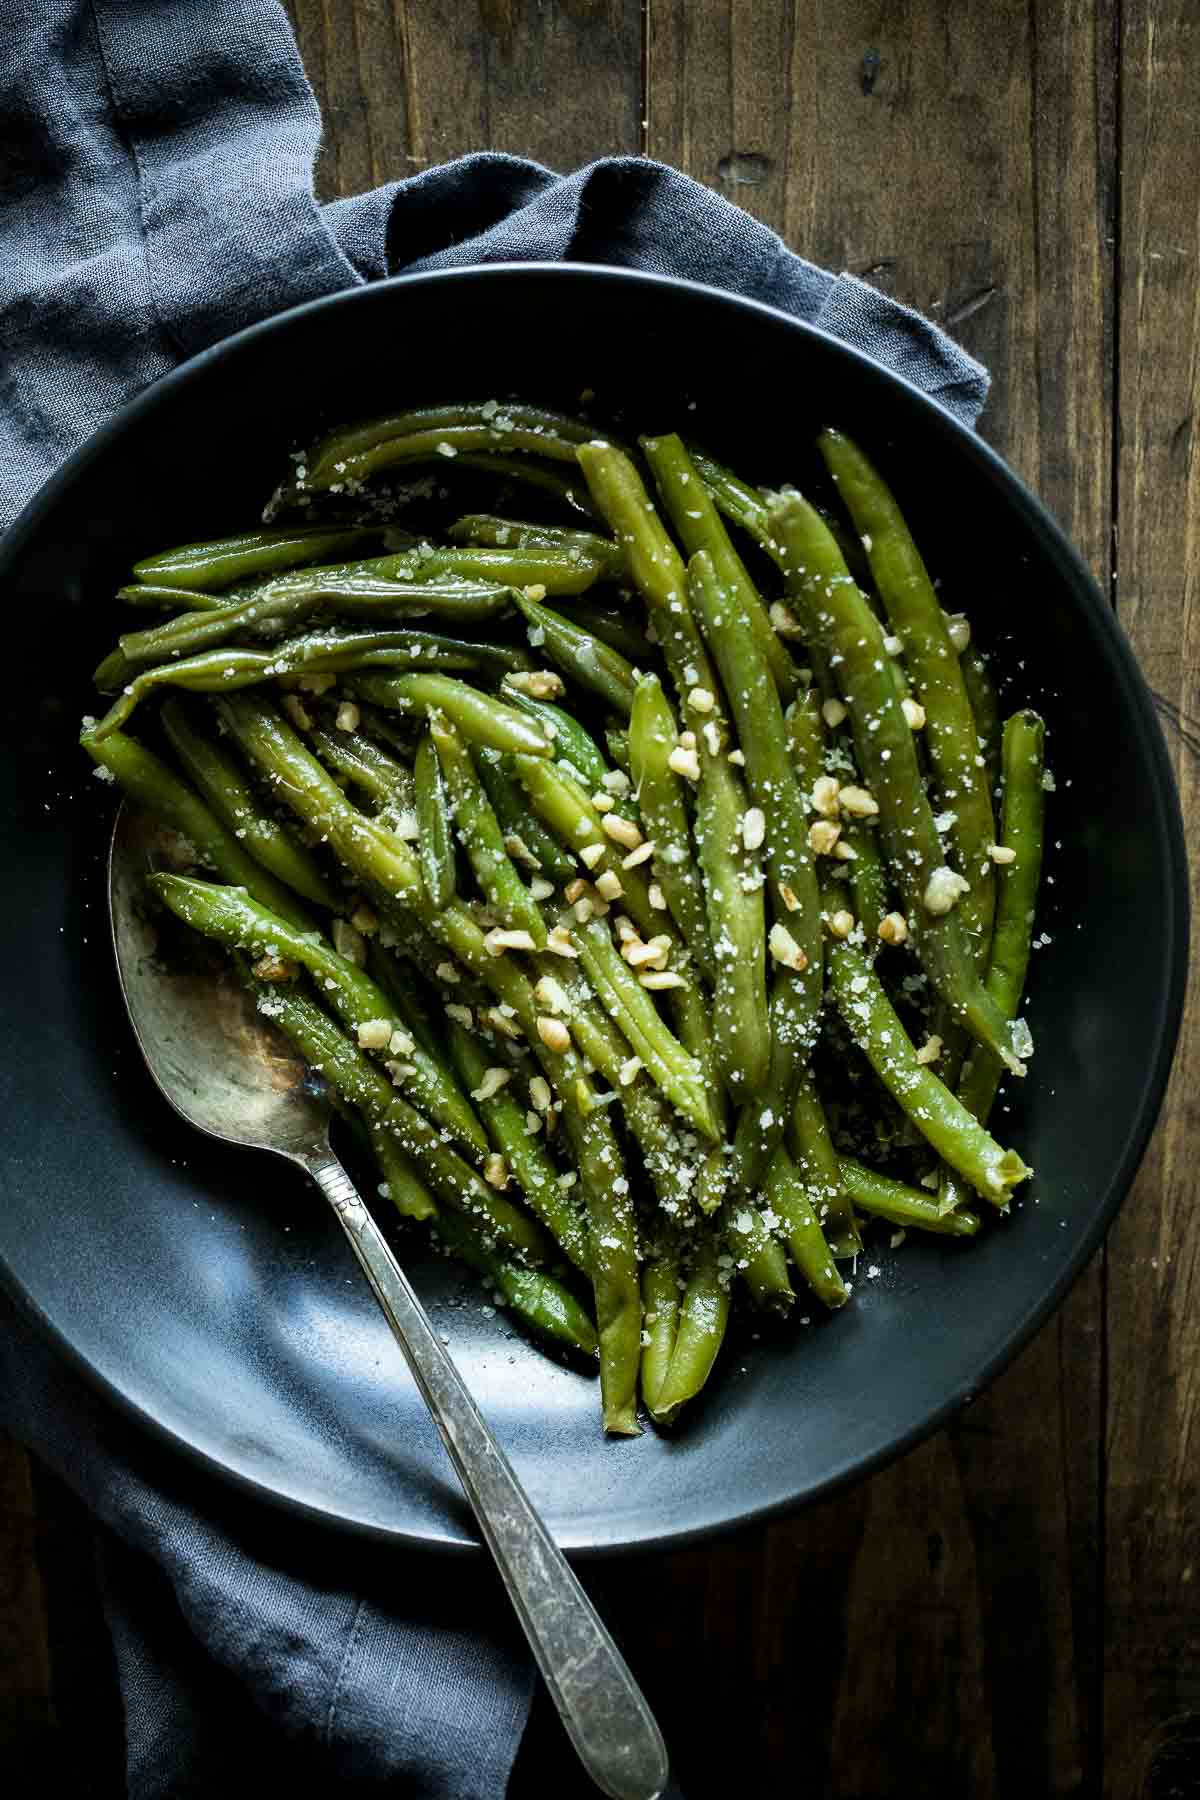 Sous vide green beans in a dark bowl with a spoon.